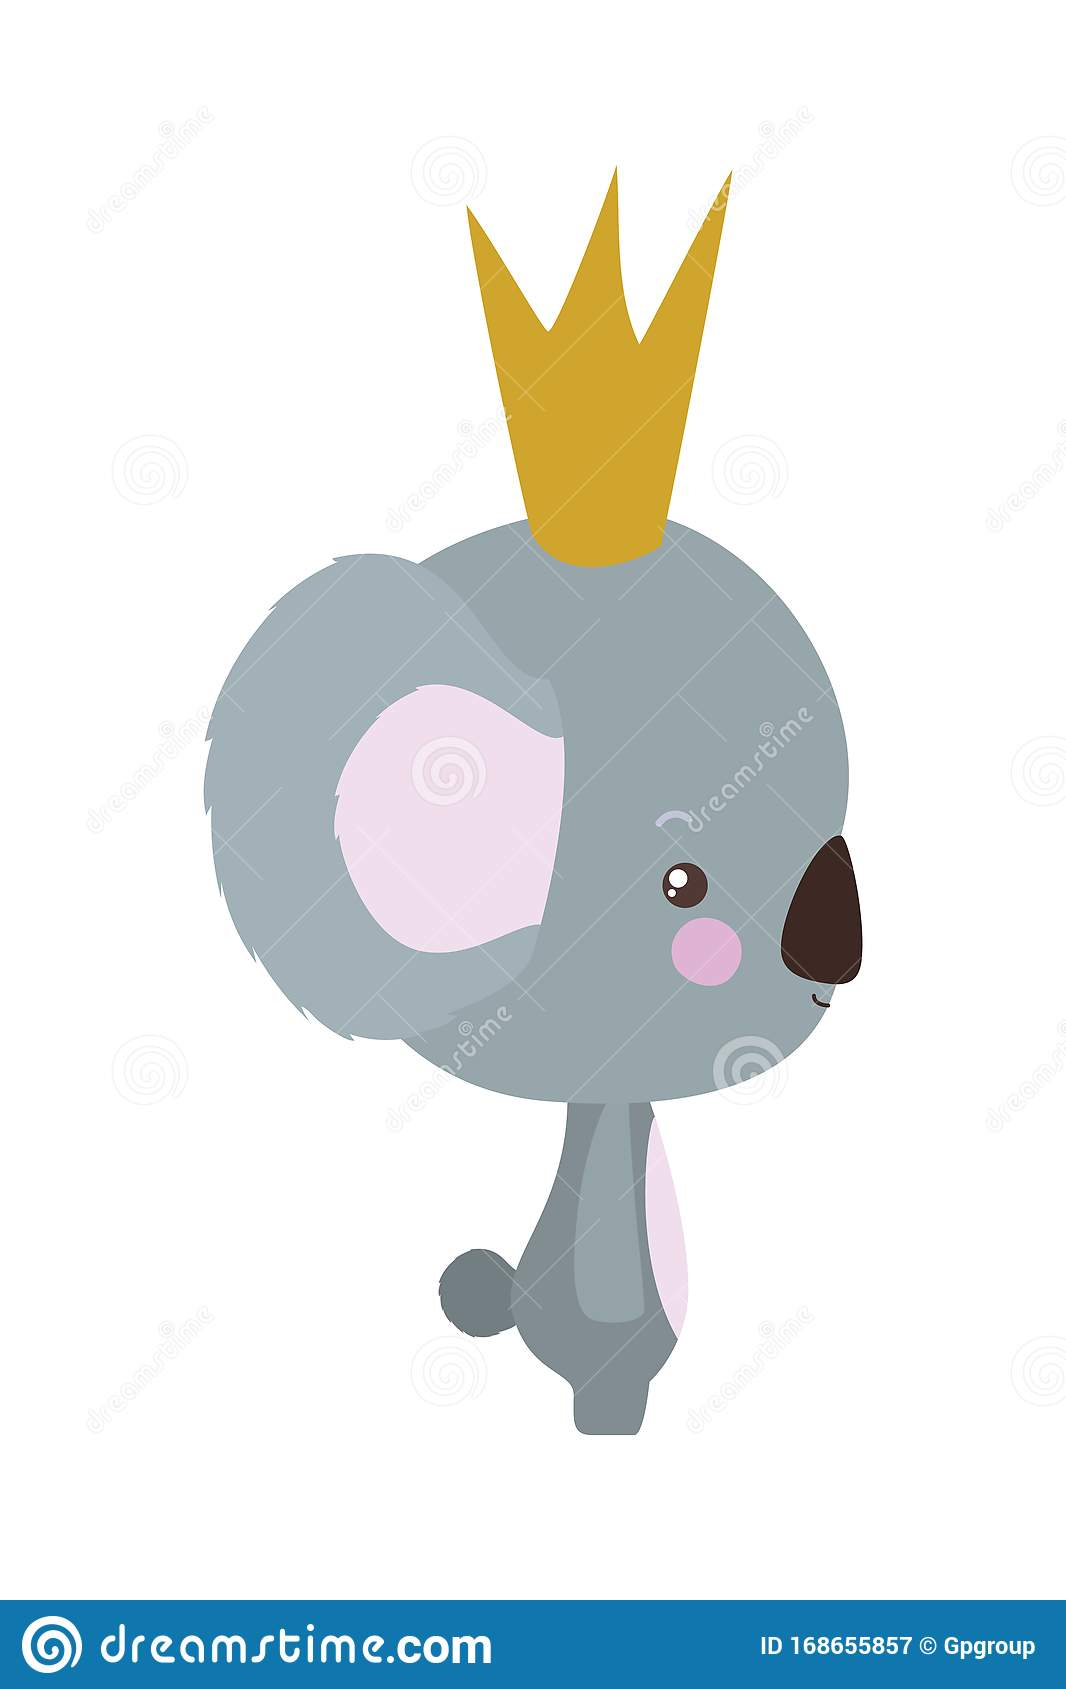 Cute Koala Cartoon With Crown Vector Design Stock Vector Illustration Of Conceptual Koala 168655857 Free for commercial use no attribution required high quality images. dreamstime com